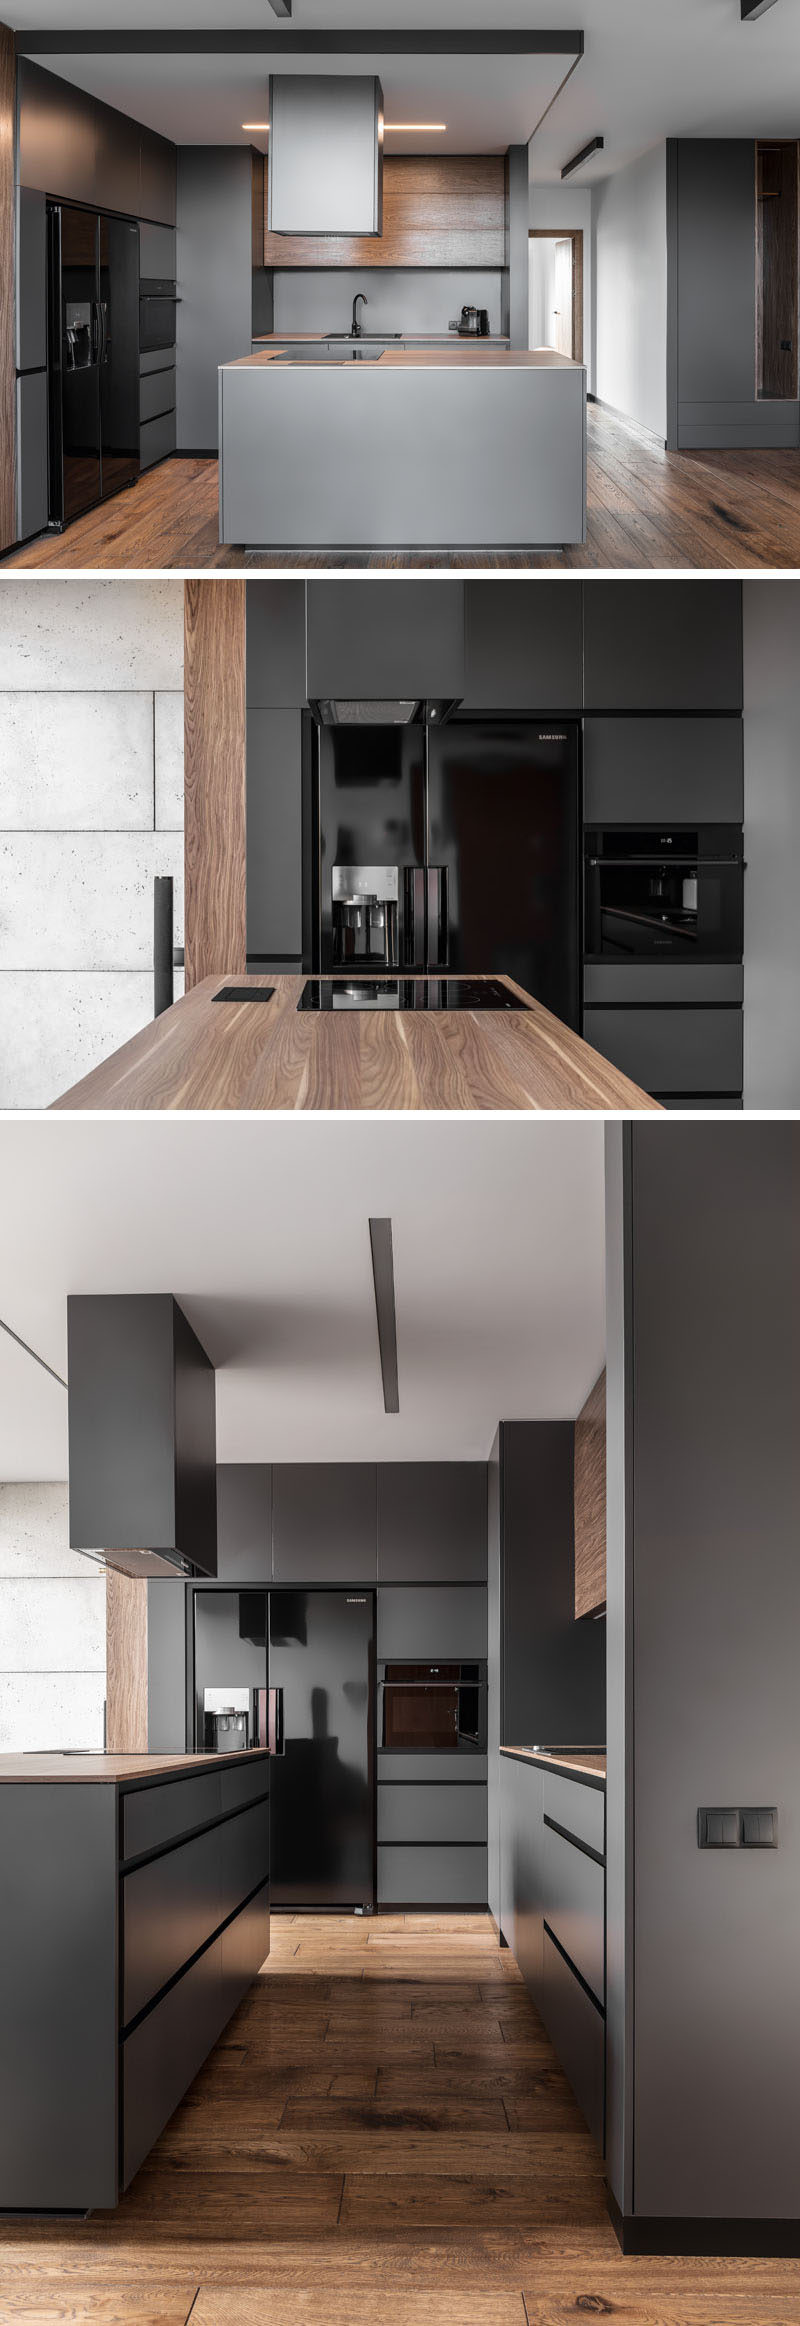 In this modern kitchen, dark grey walls and cabinets have been paired with glossy black appliances and wood elements.